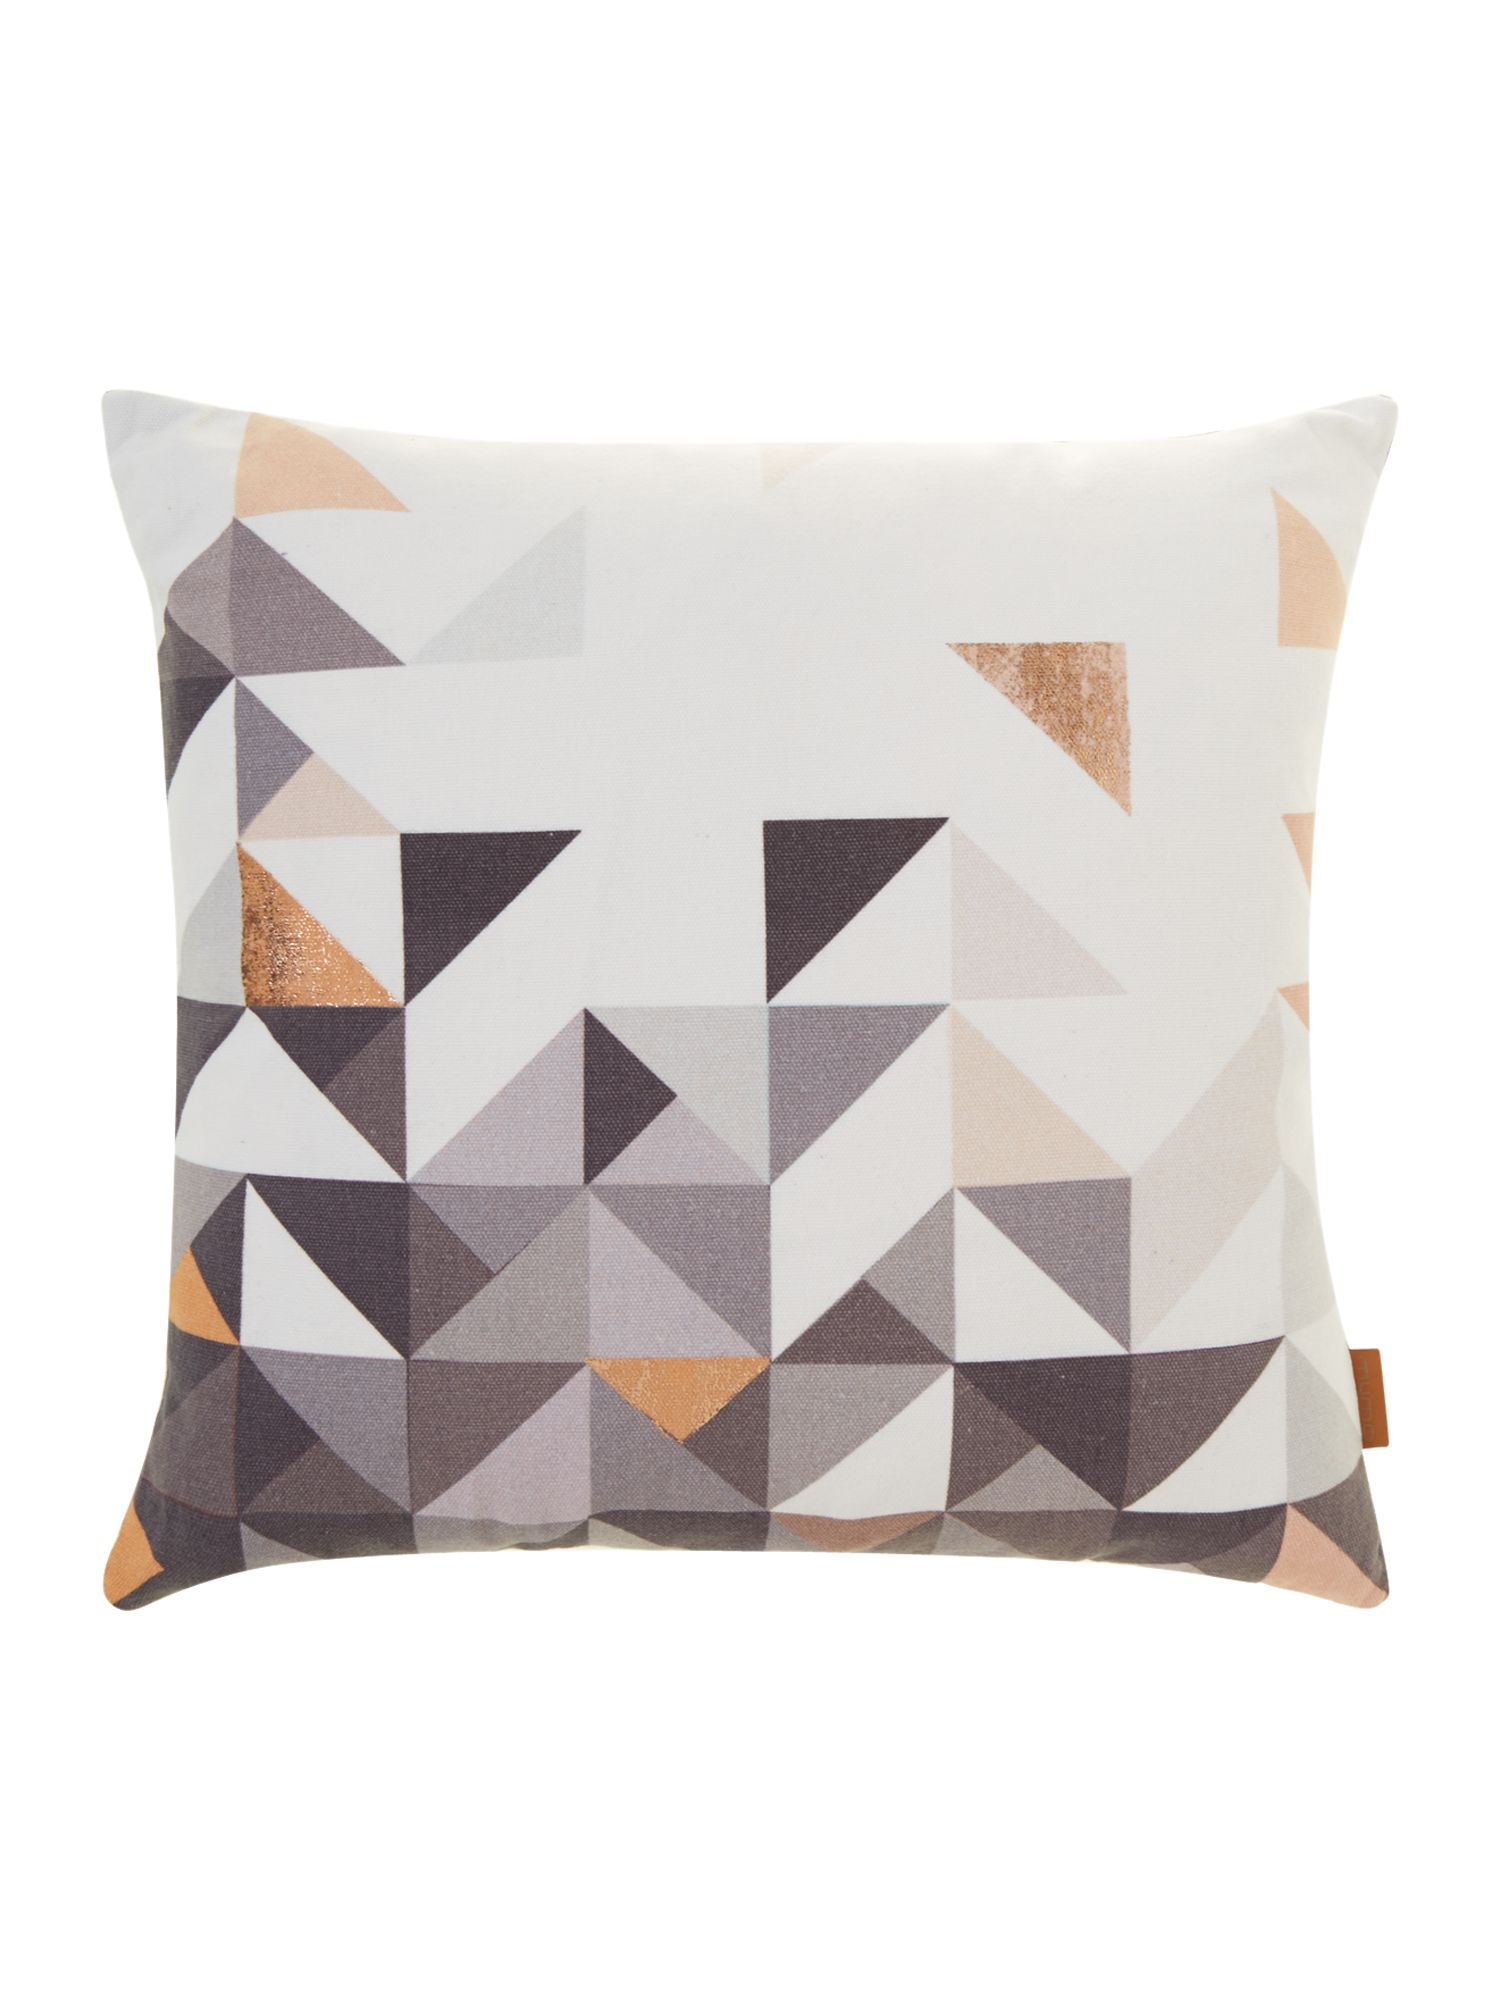 Paulista copper geometric, velvet backed cushion